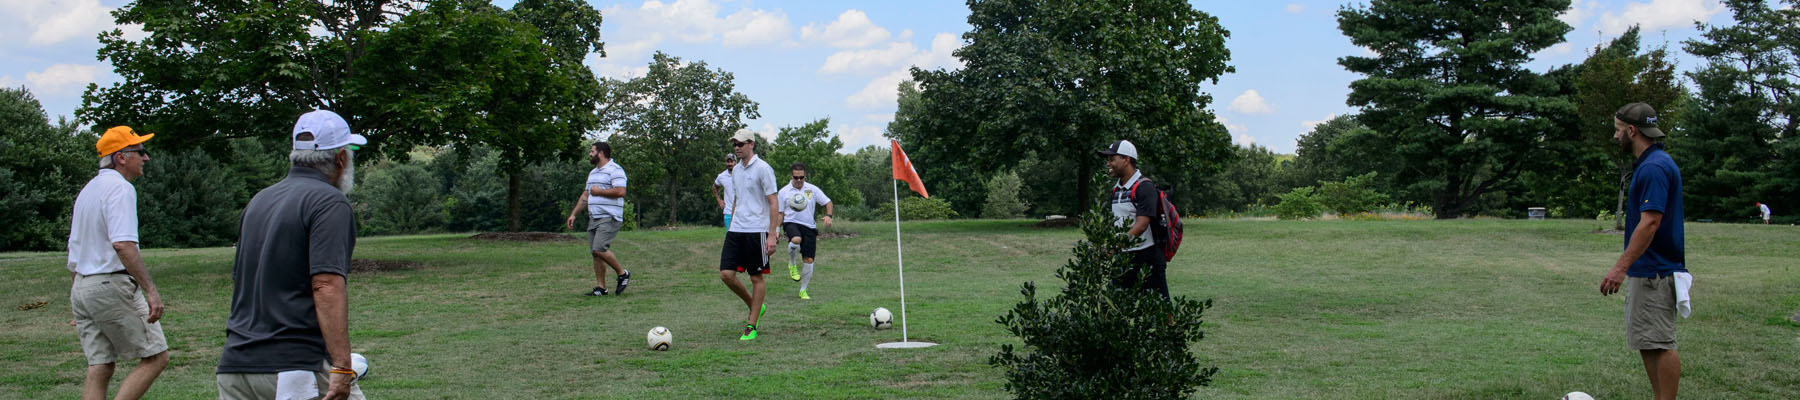 Footgolf Group Photo